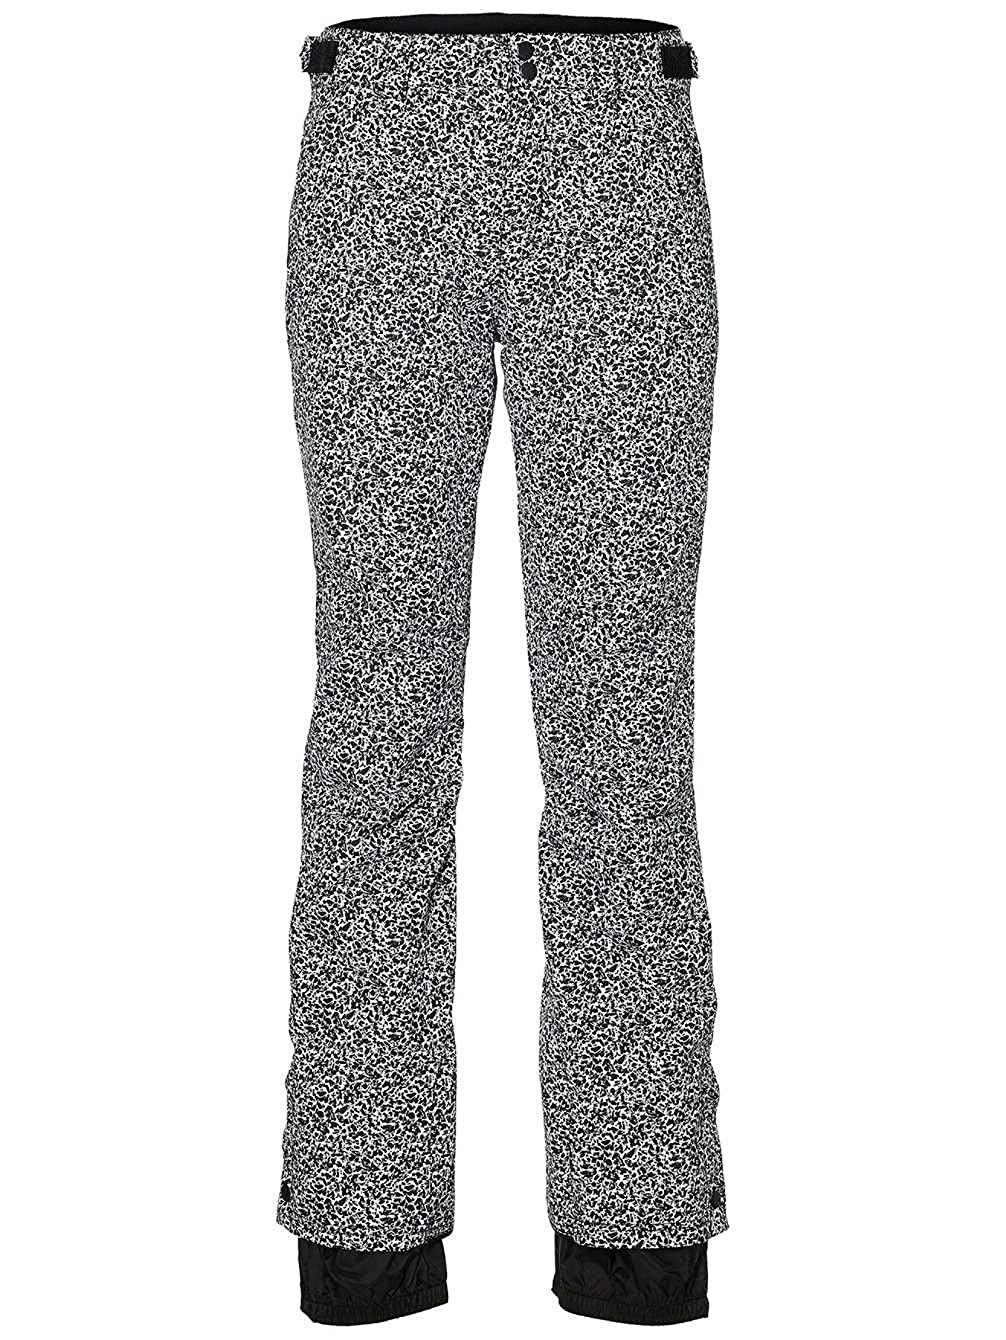 ONeill Womens Snowboard Hose Glamour Pants Trousers